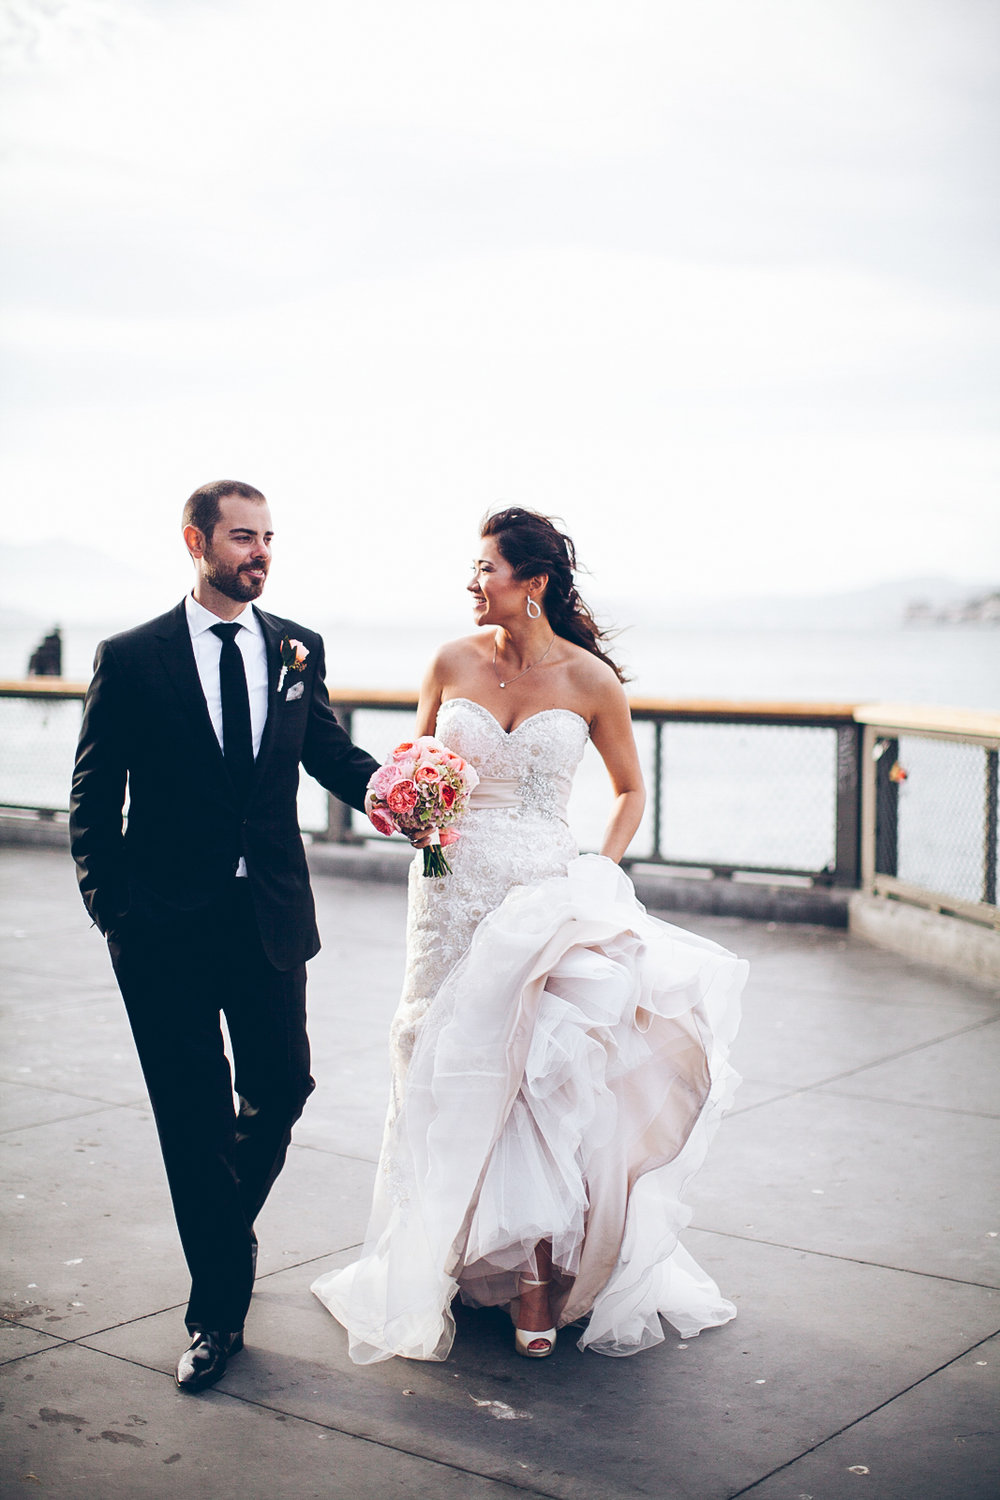 San_francisco_city_hall_wedding_photography_meegan_travis_ebony_siovhan_bokeh_photography_87.jpg